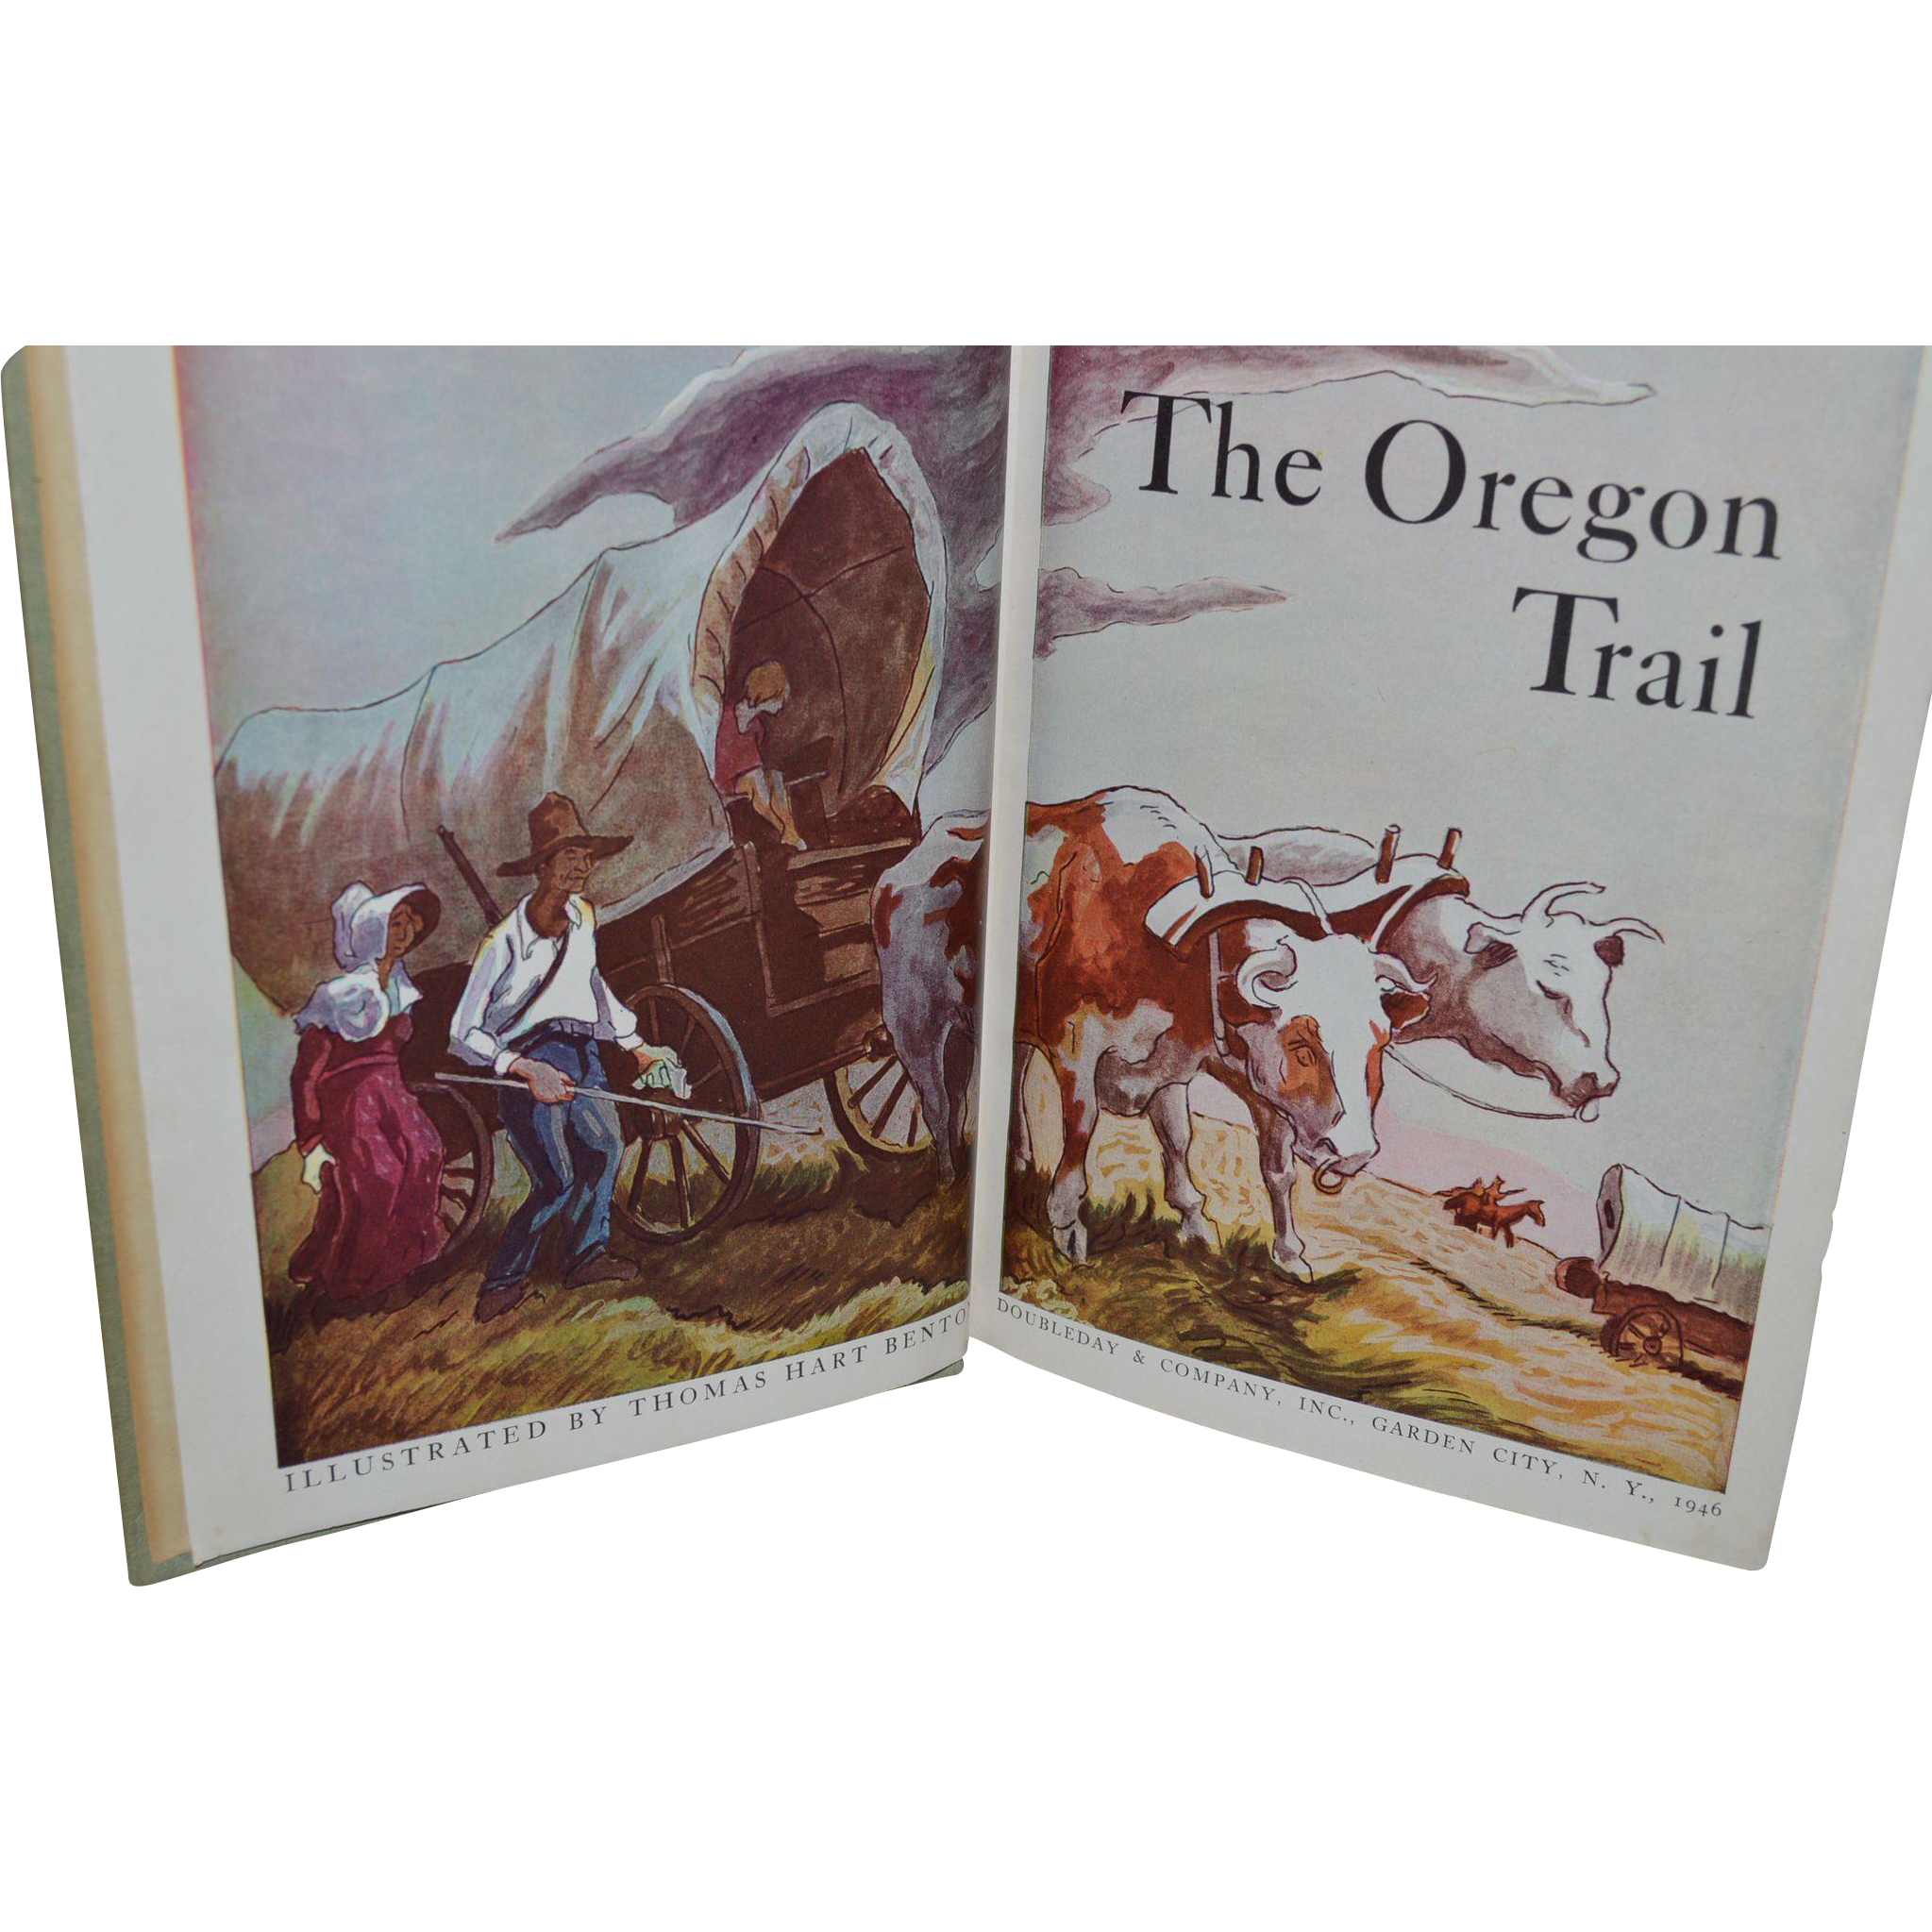 The Oregon Trail by Francis Parkman, Thomas Hart Benton (illustrator). Garden City, New York: Doubleday & Co., 1946.